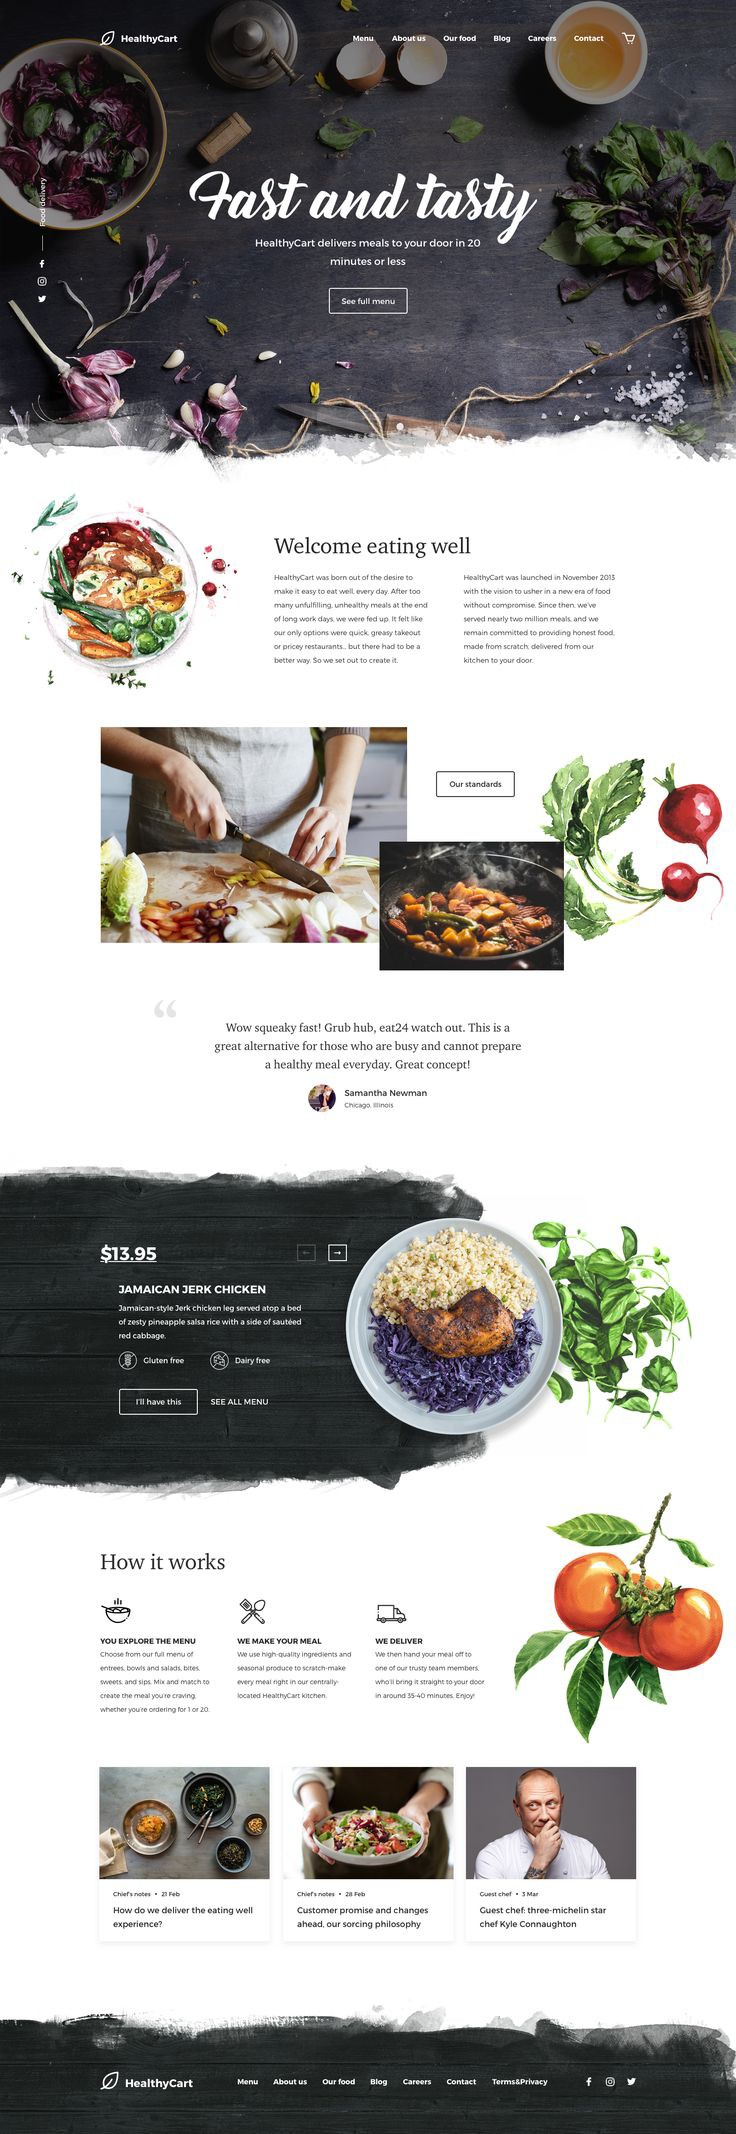 Weebly Landing Web pages templates